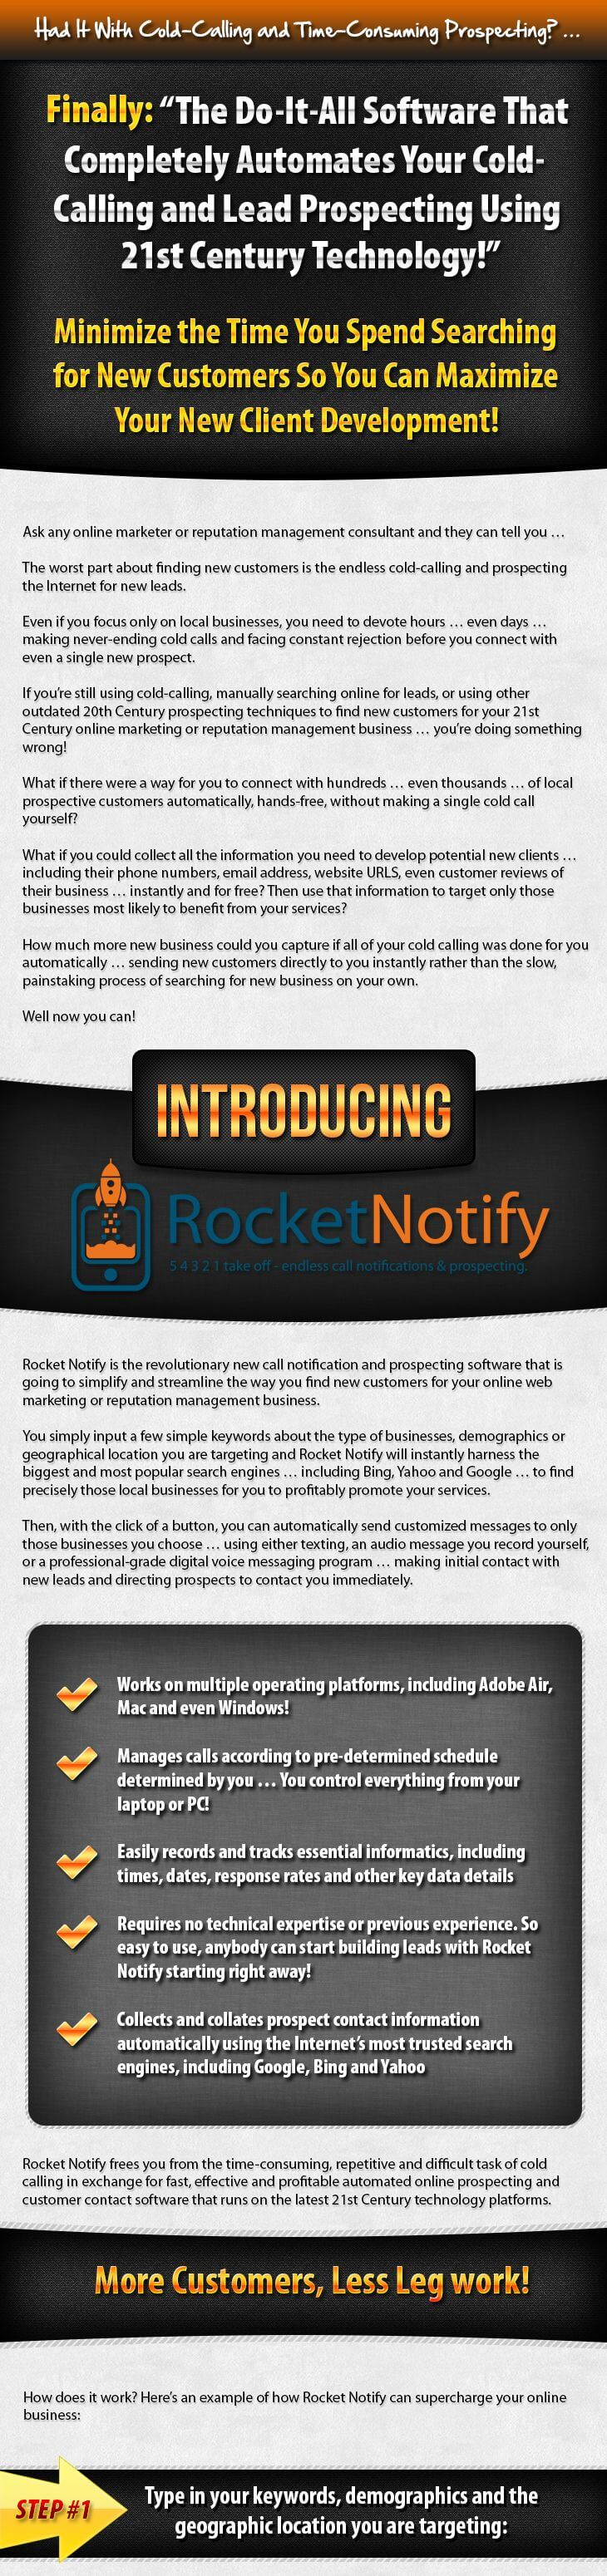 ROCKET NOTIFY x7r5f2q